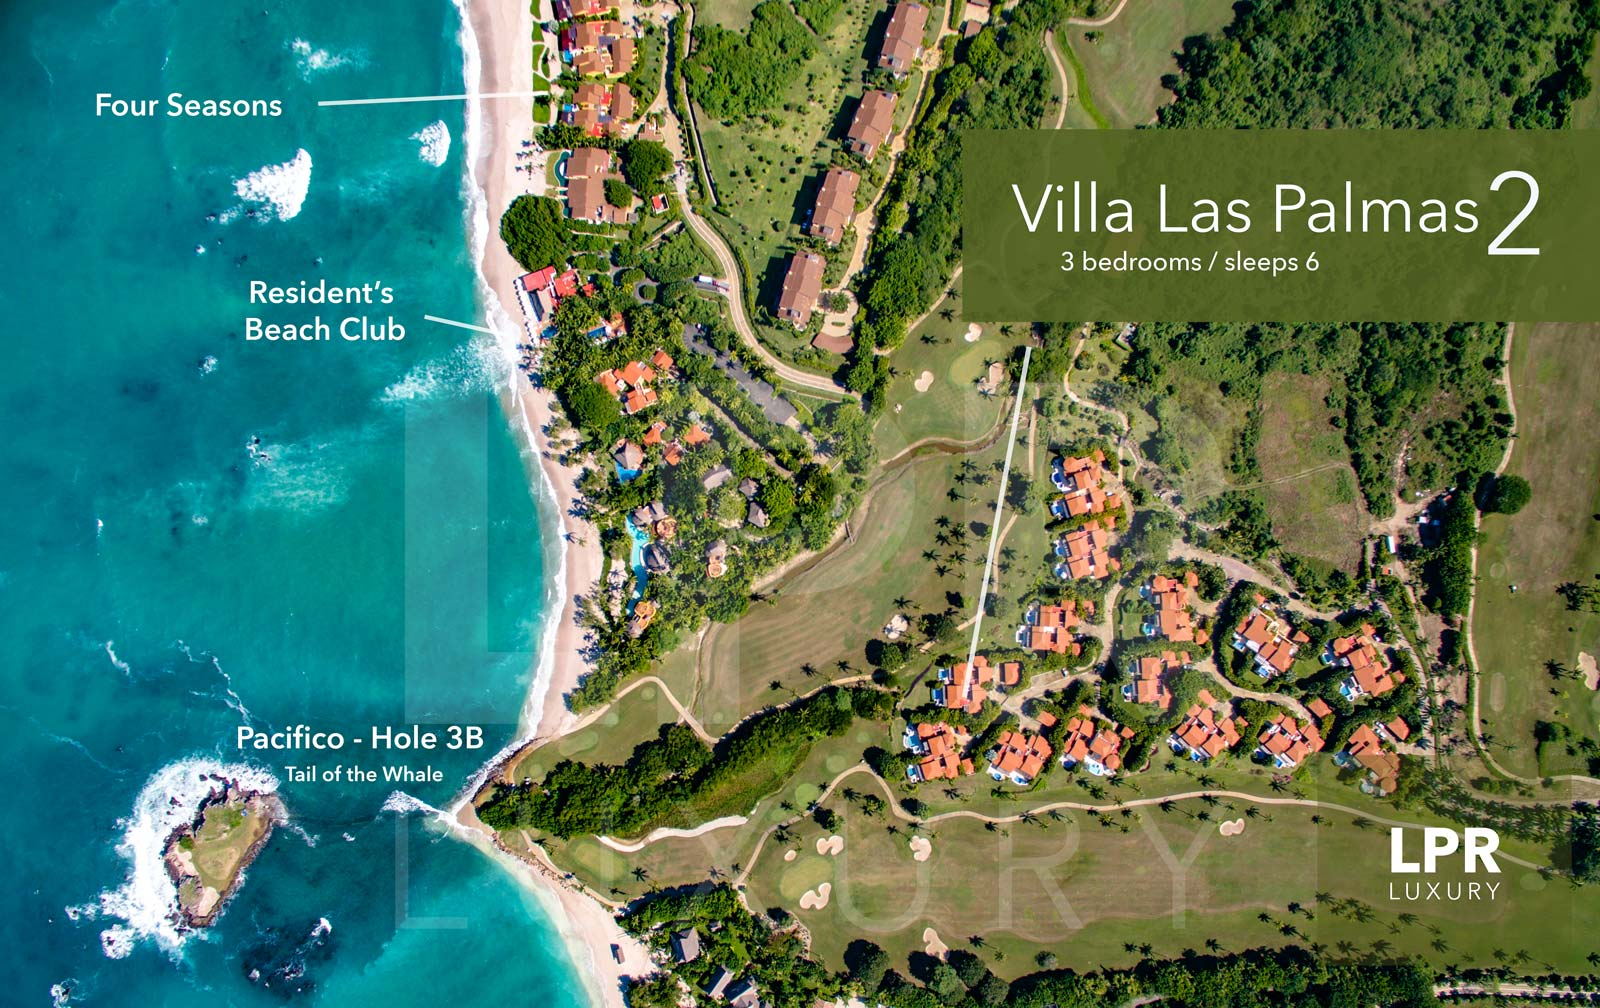 Villa Las Palmas 2 - Ocean view golf course villa at the Punta Mita Resort, Riviera Nayarit, Mexico - Vacation rentals and real estate